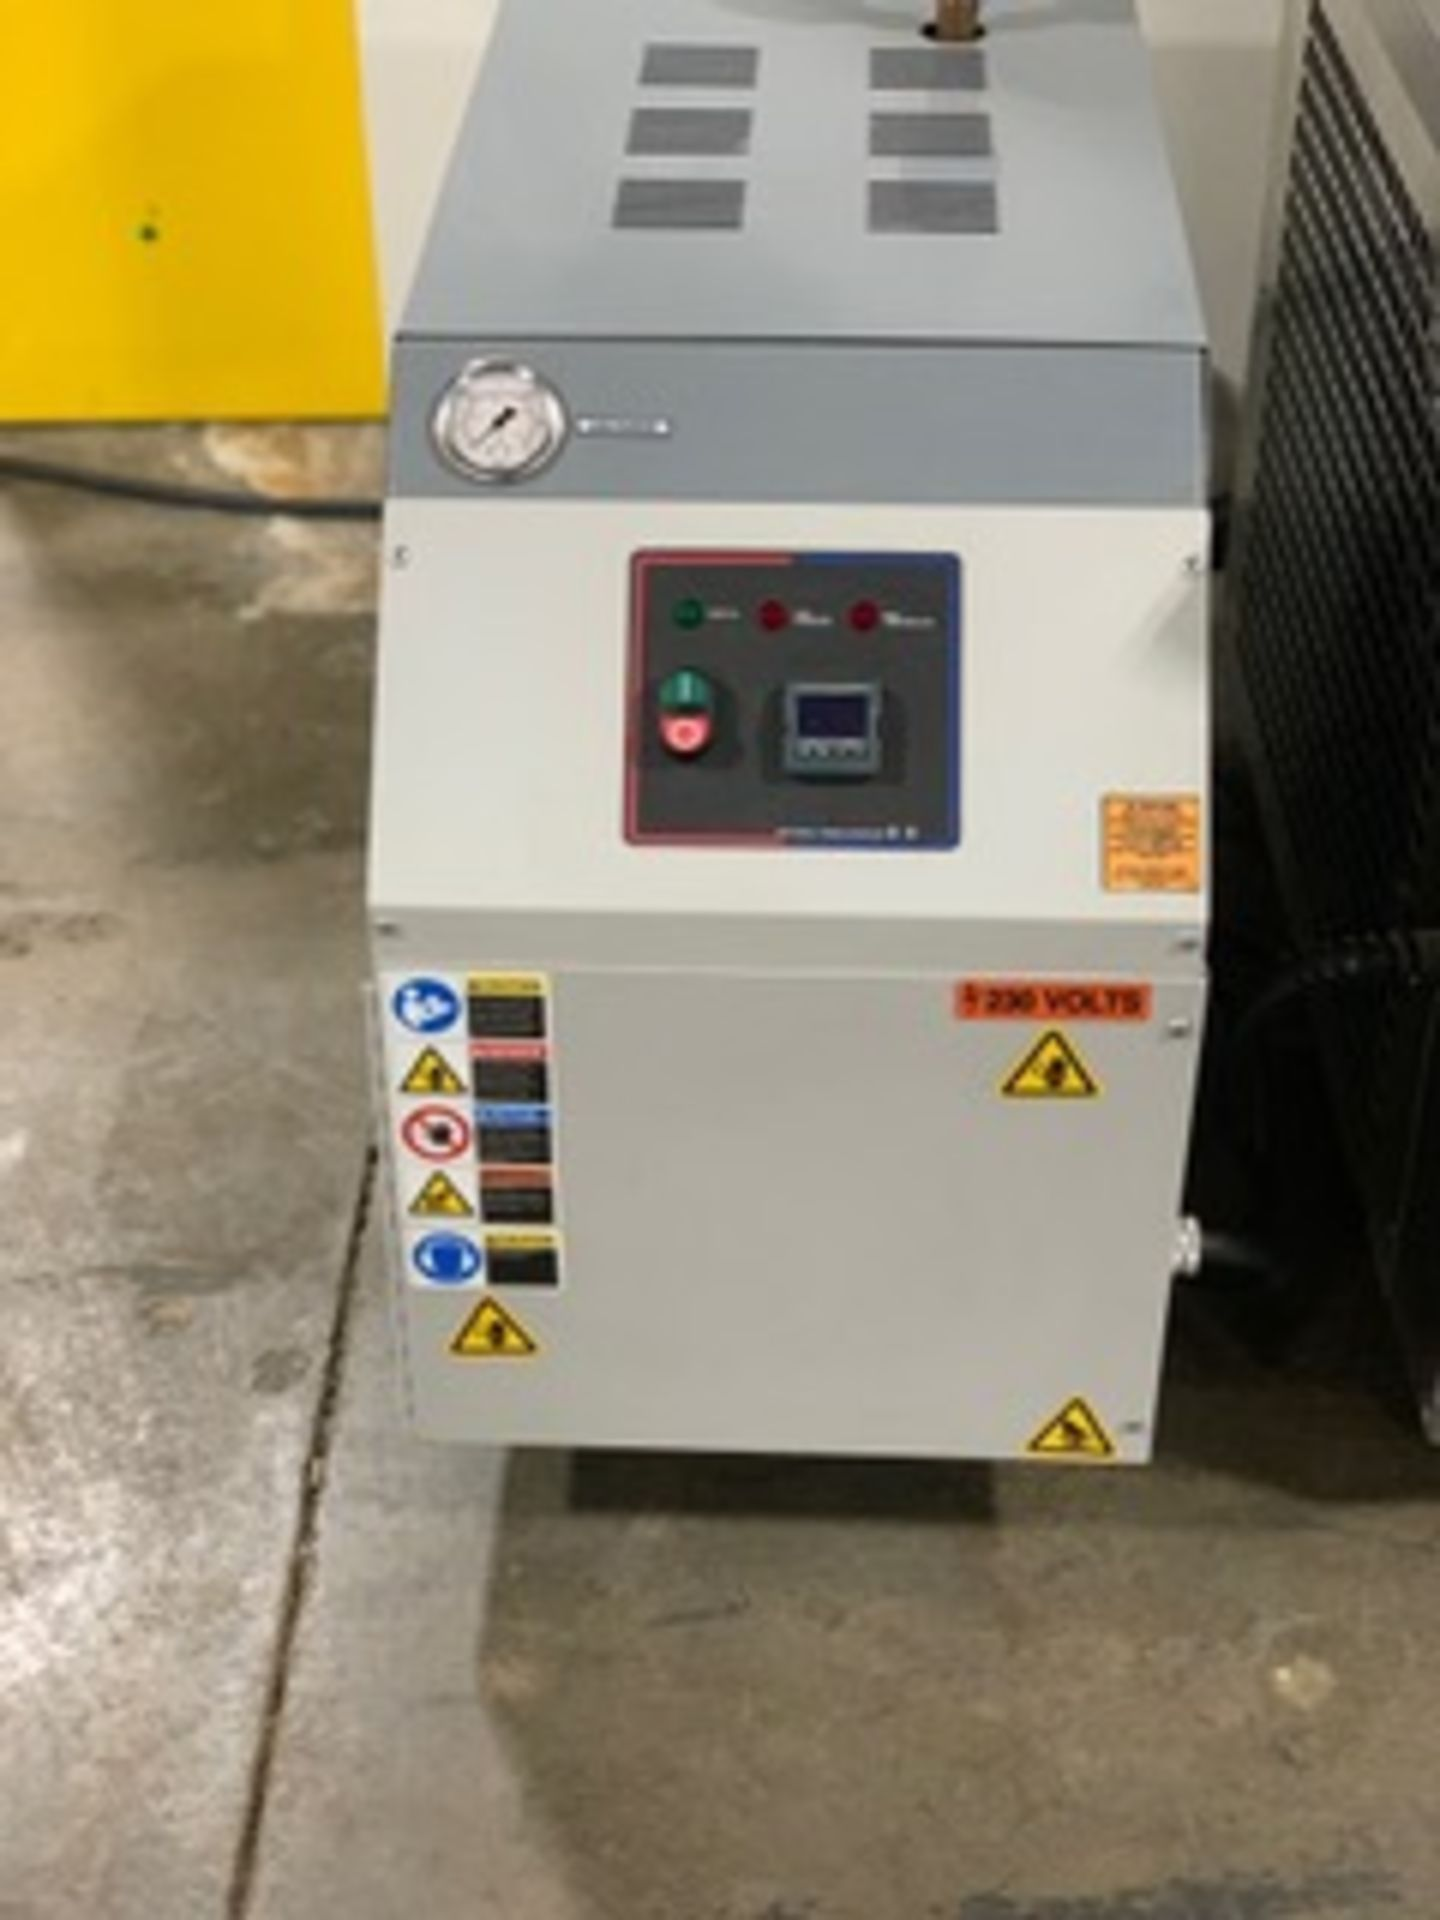 Used-Colorado Extraction Systems SprayVap System w/TripleXtract System. Model SV20. - Image 21 of 27